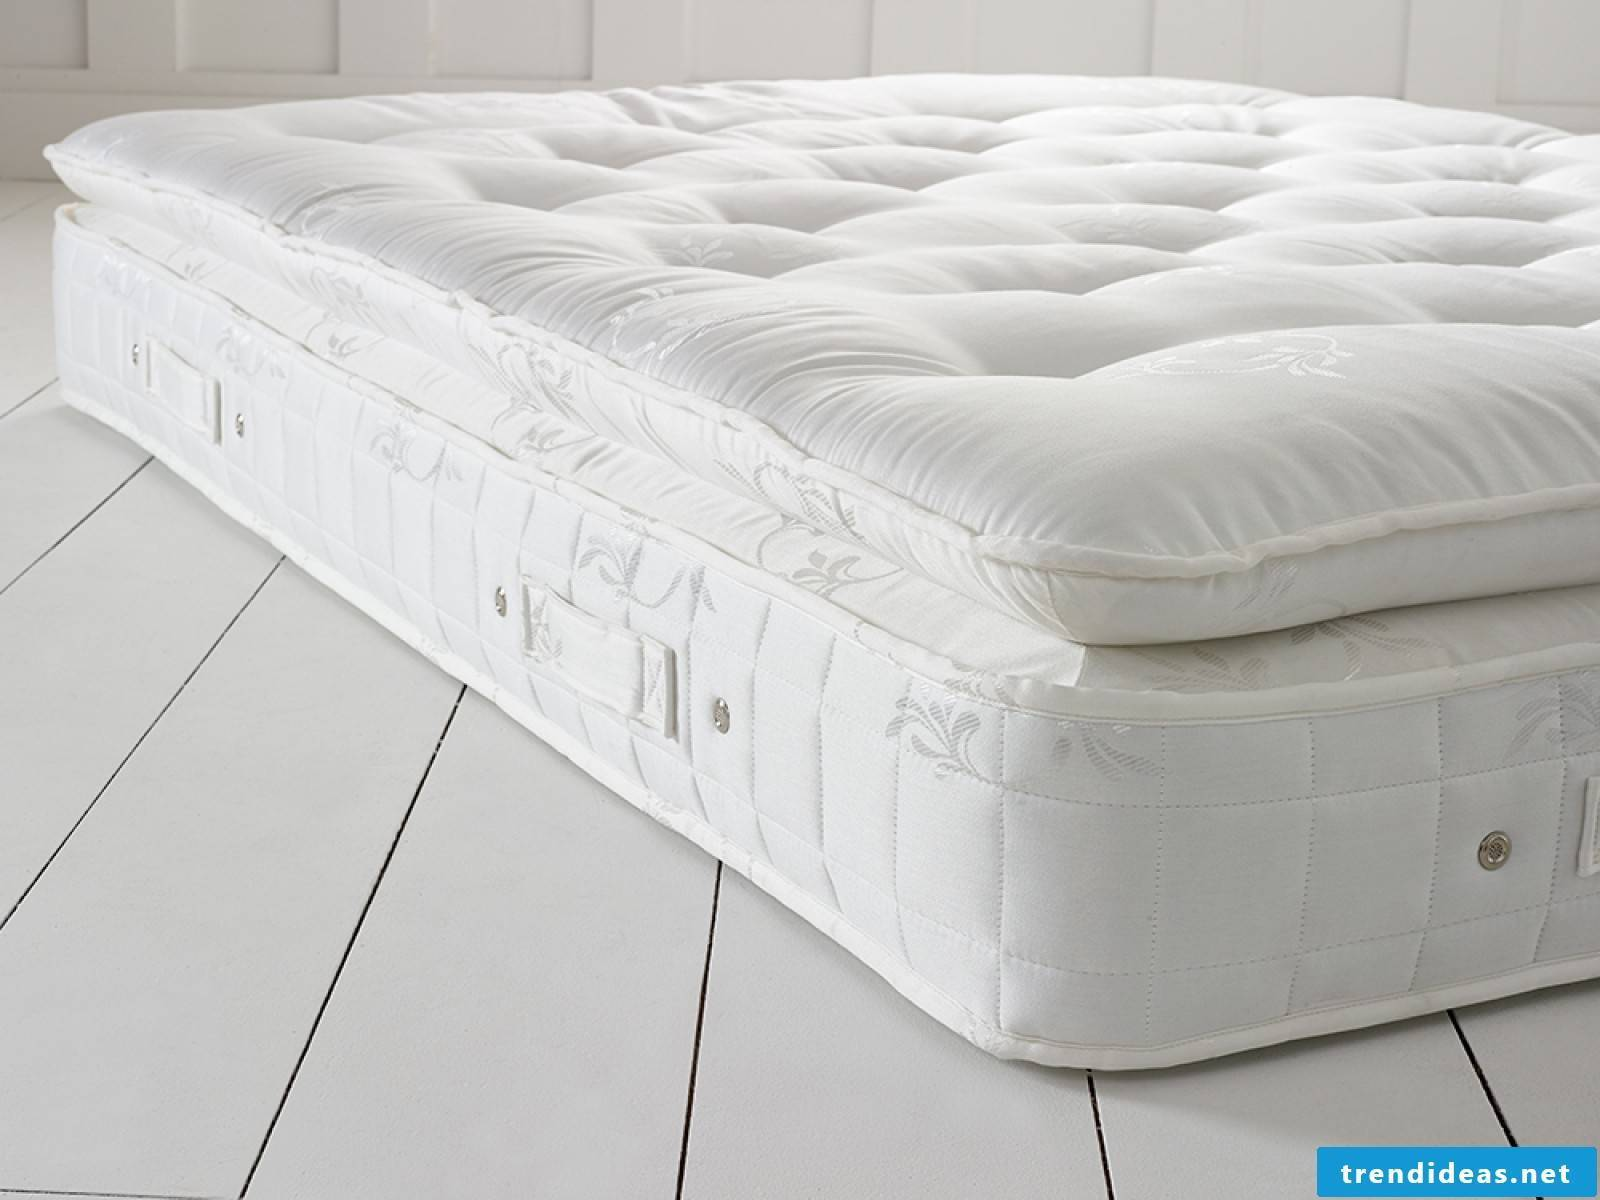 Mattress purchase - Which types of mattresses are available on the market?